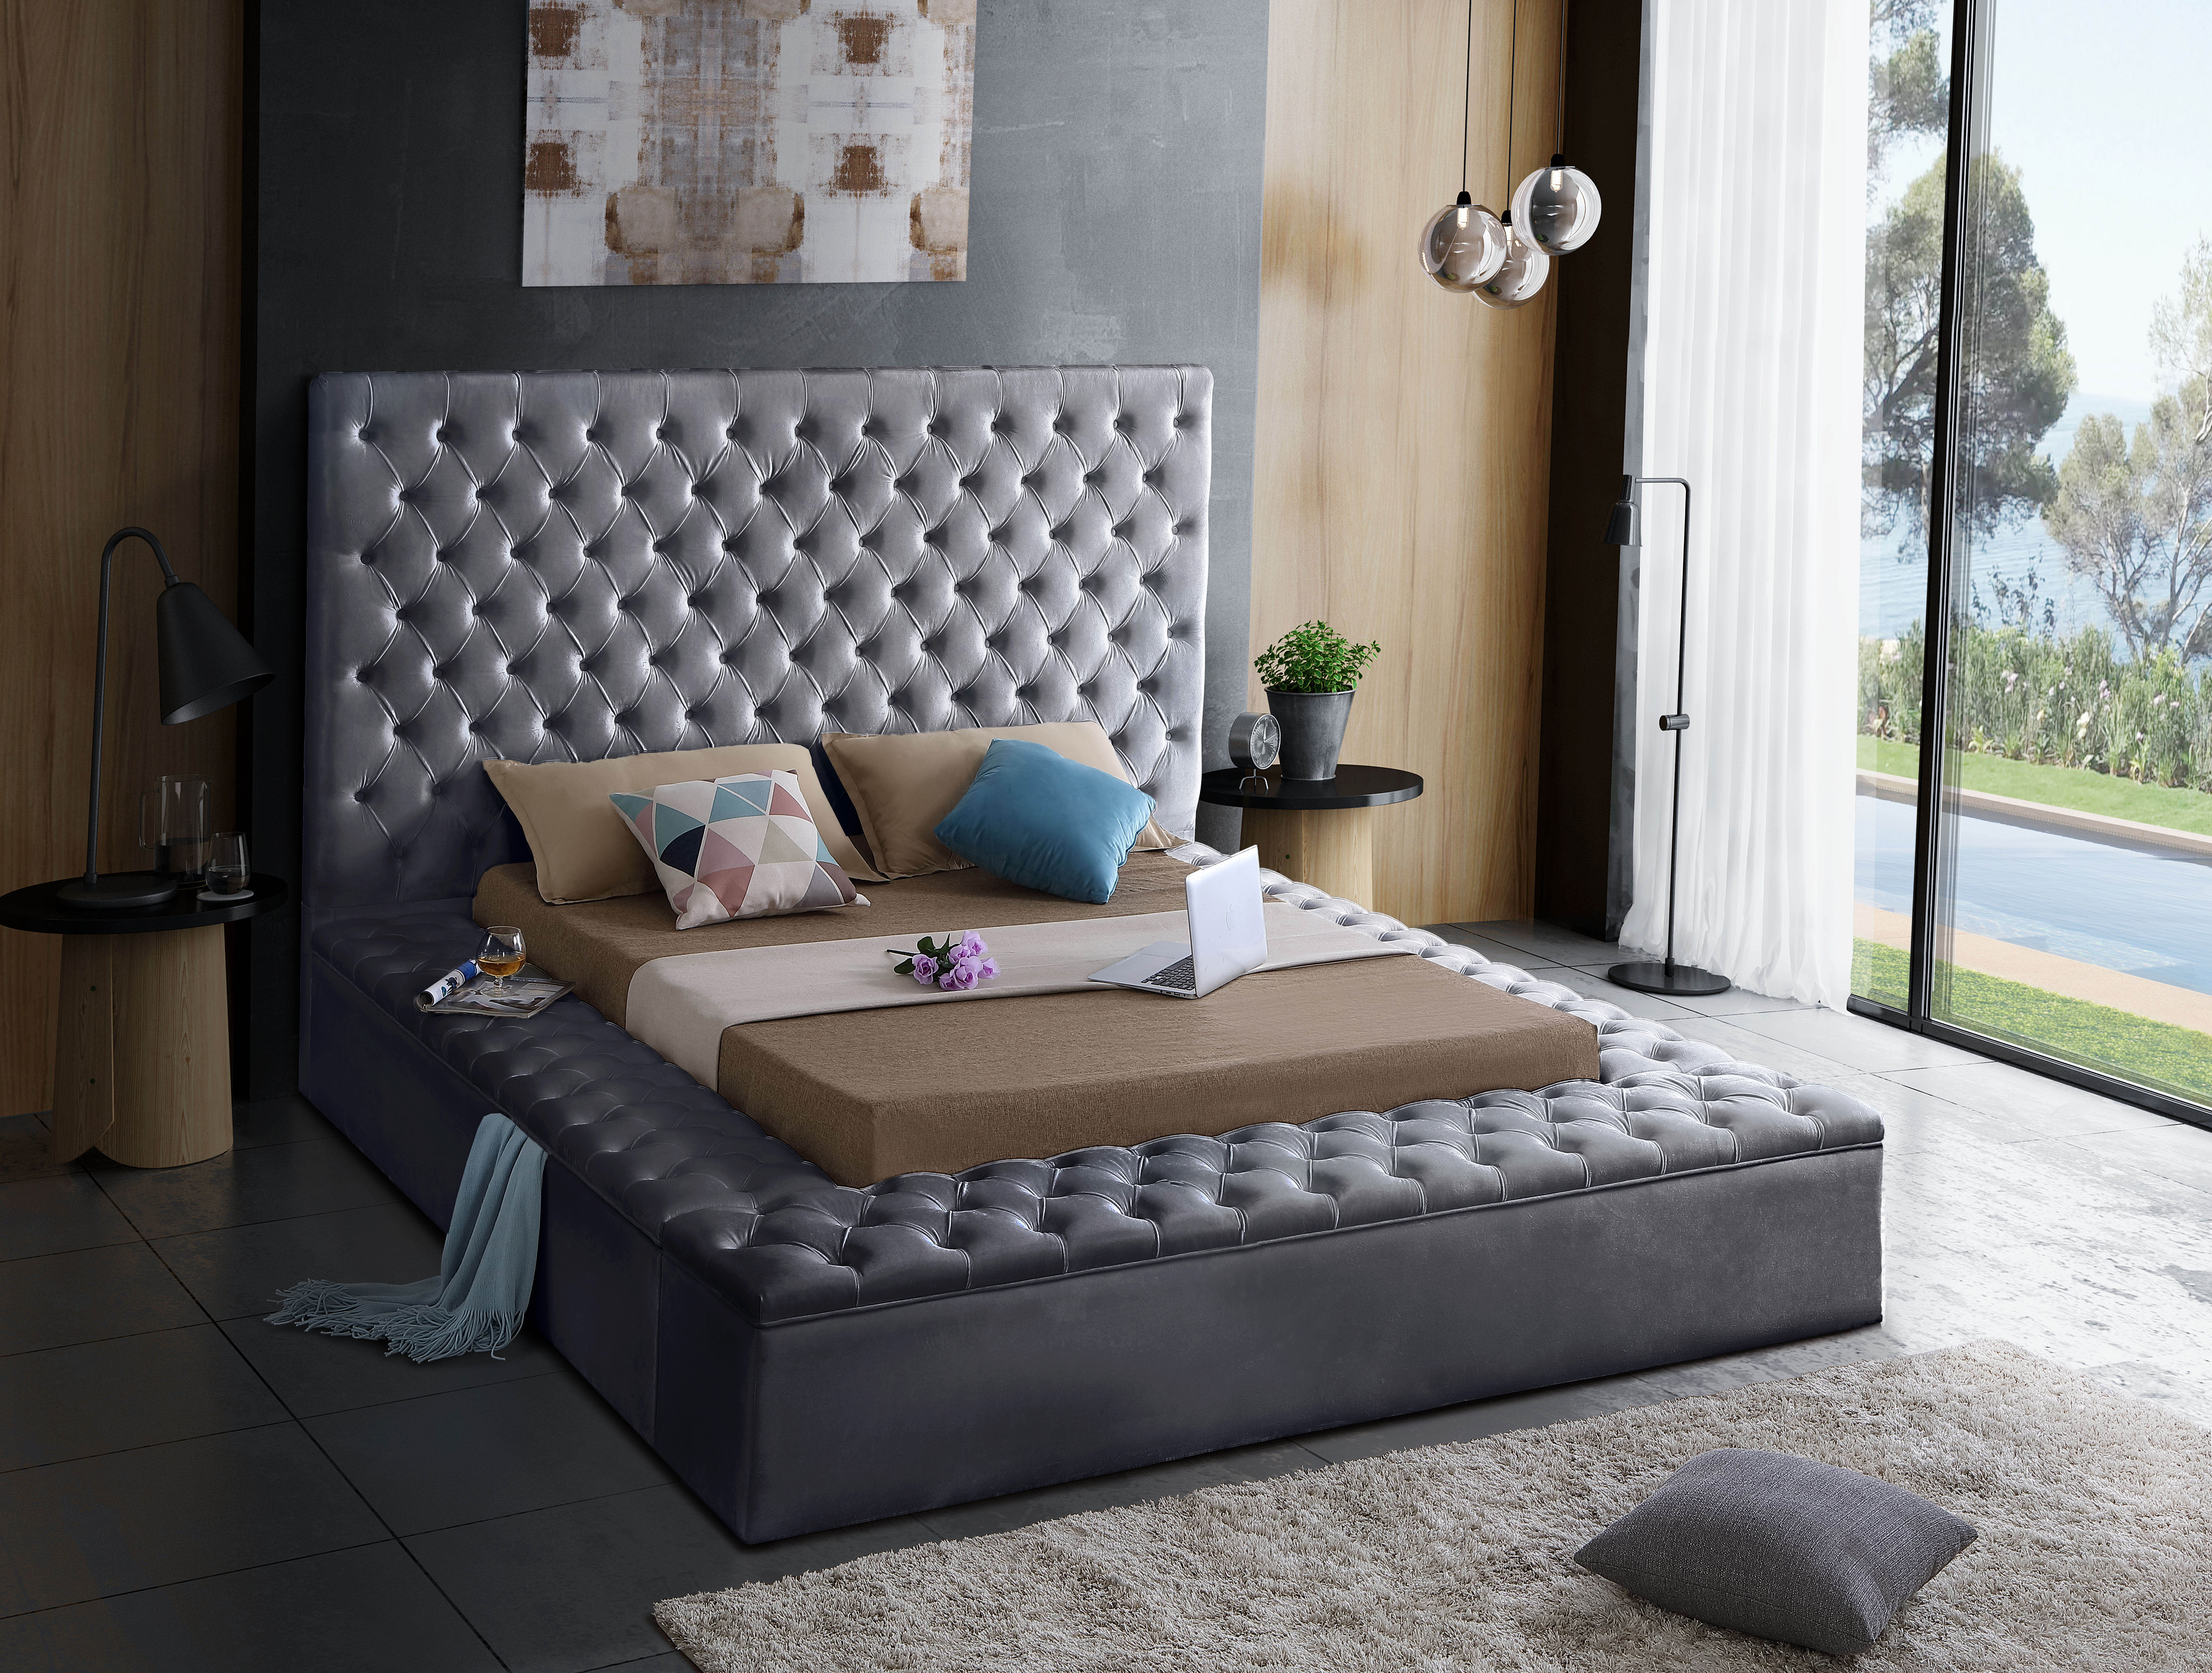 Willa Arlo Interiors Geralyn Upholstered Storage Platform Bed Reviews Wayfair